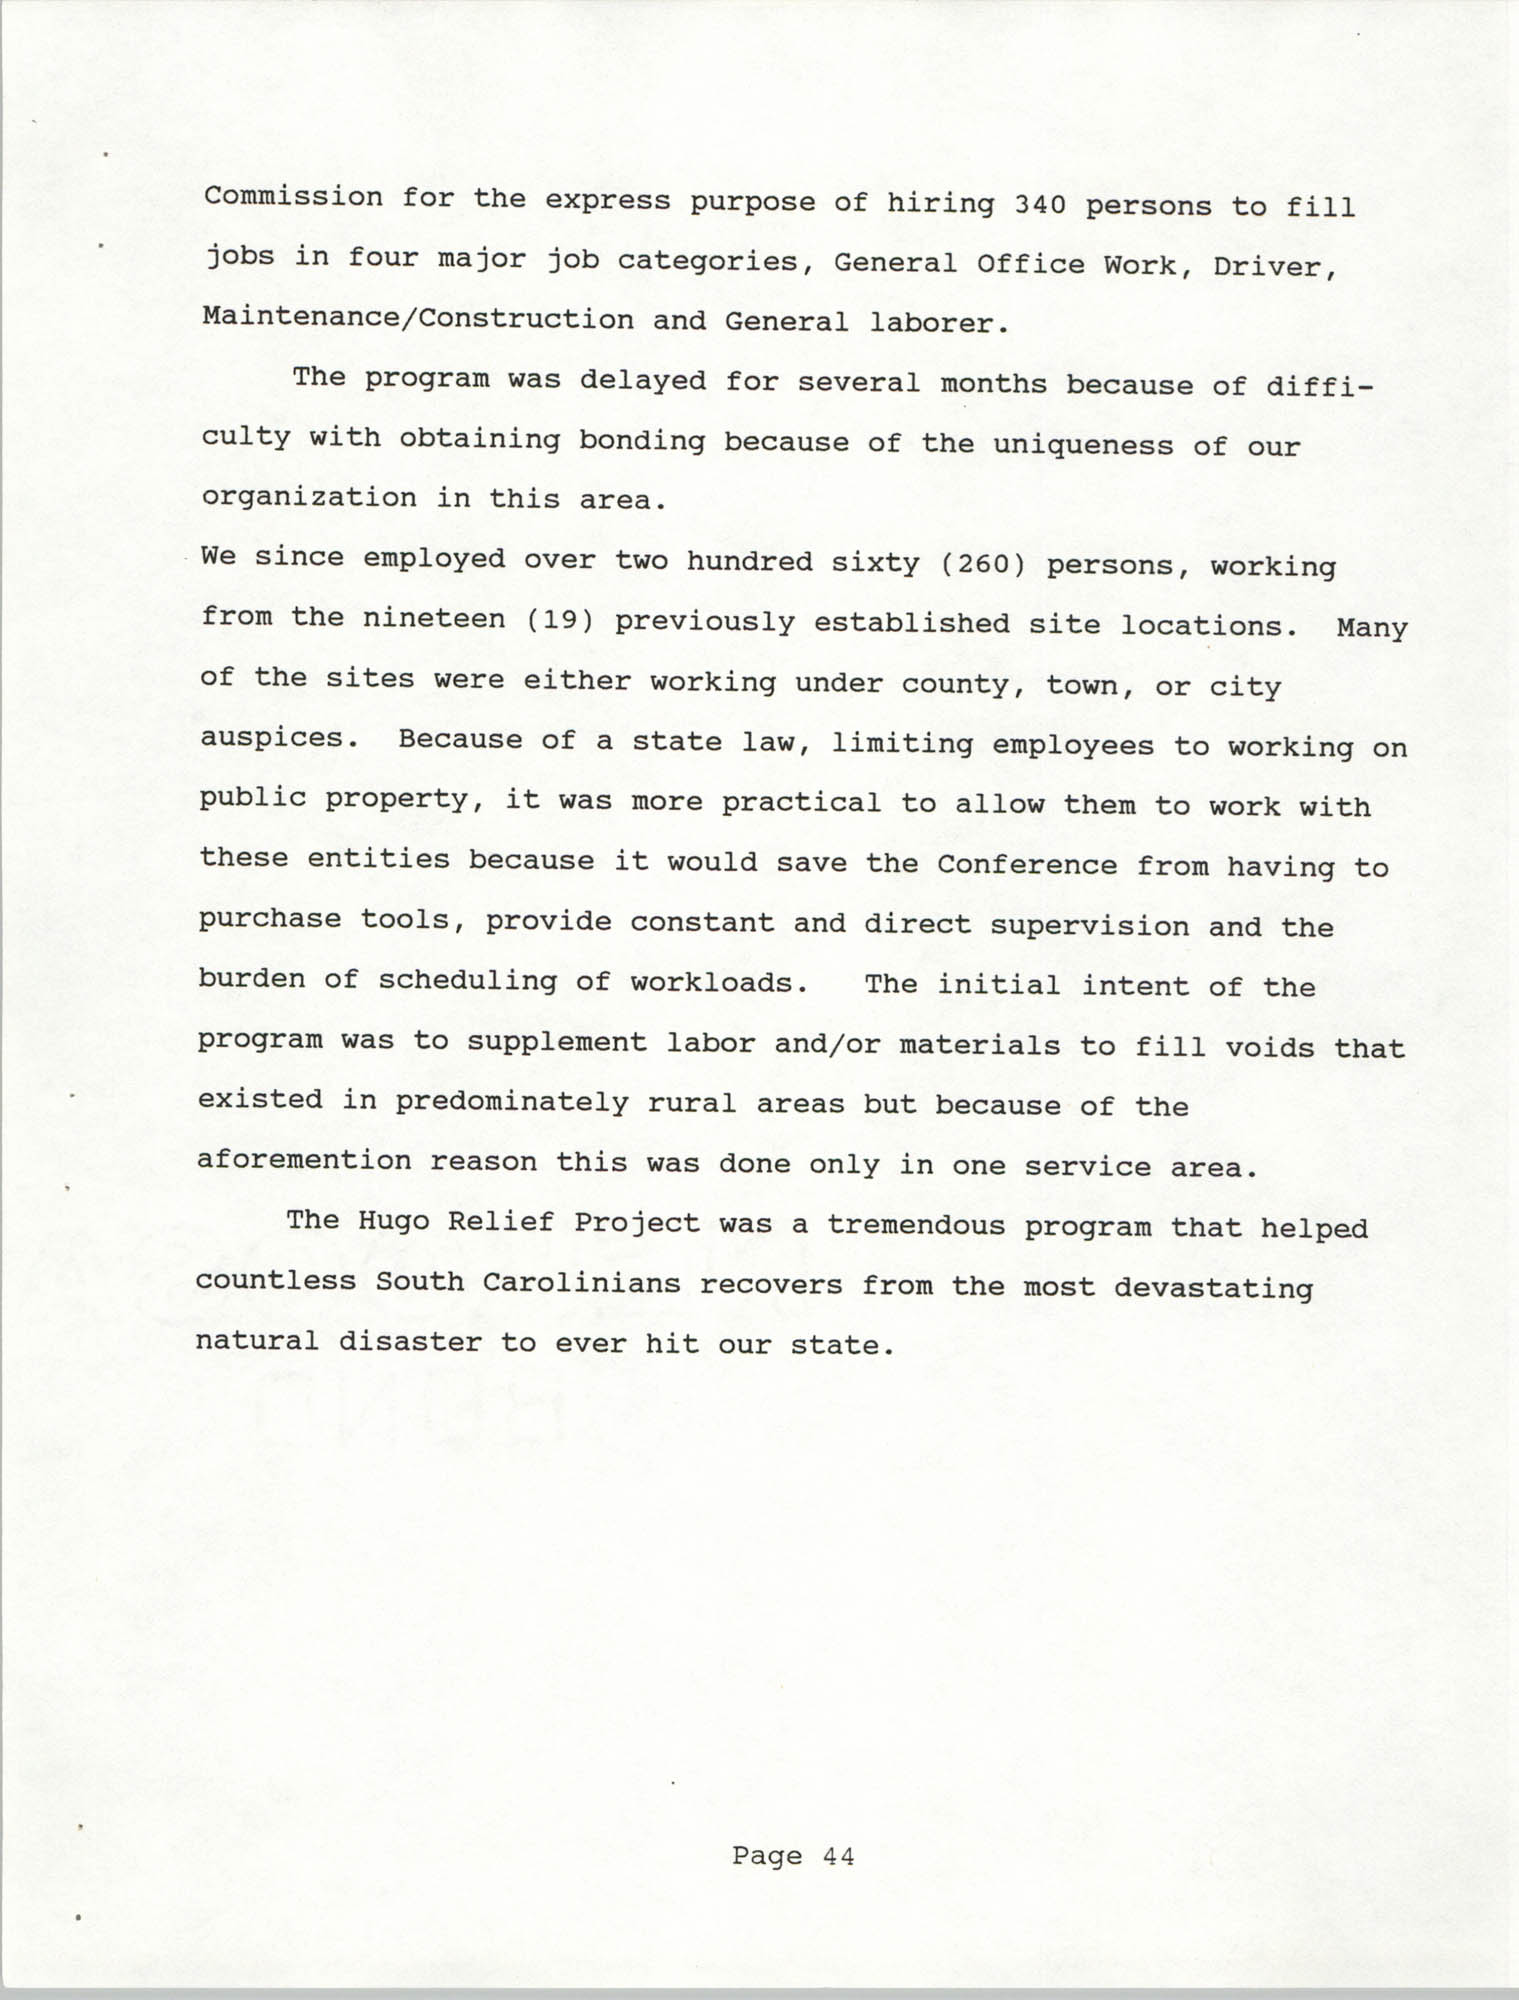 South Carolina Conference of Branches of the NAACP, 1990 Annual Report, Part Two, Page 44